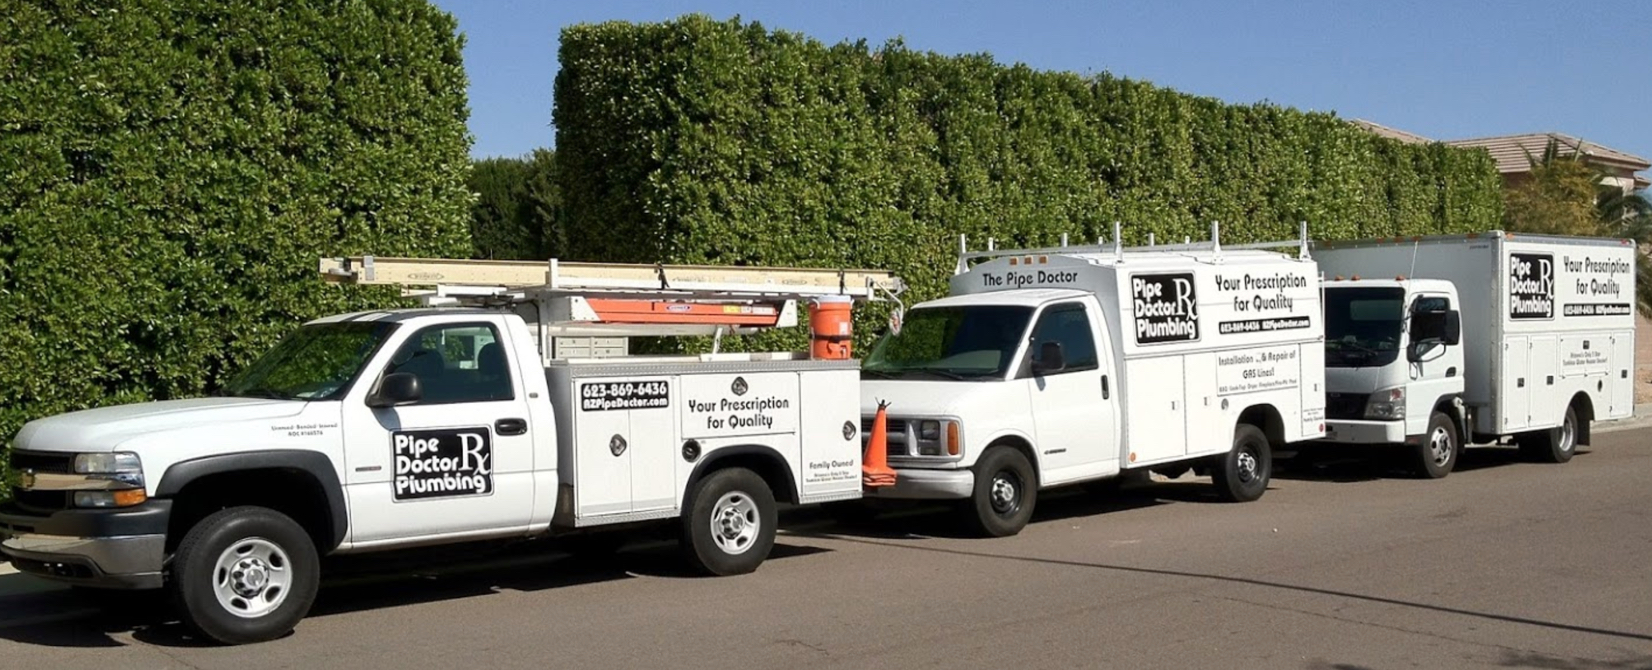 az's best pipe doctor plumbing fleet near a phoenix home